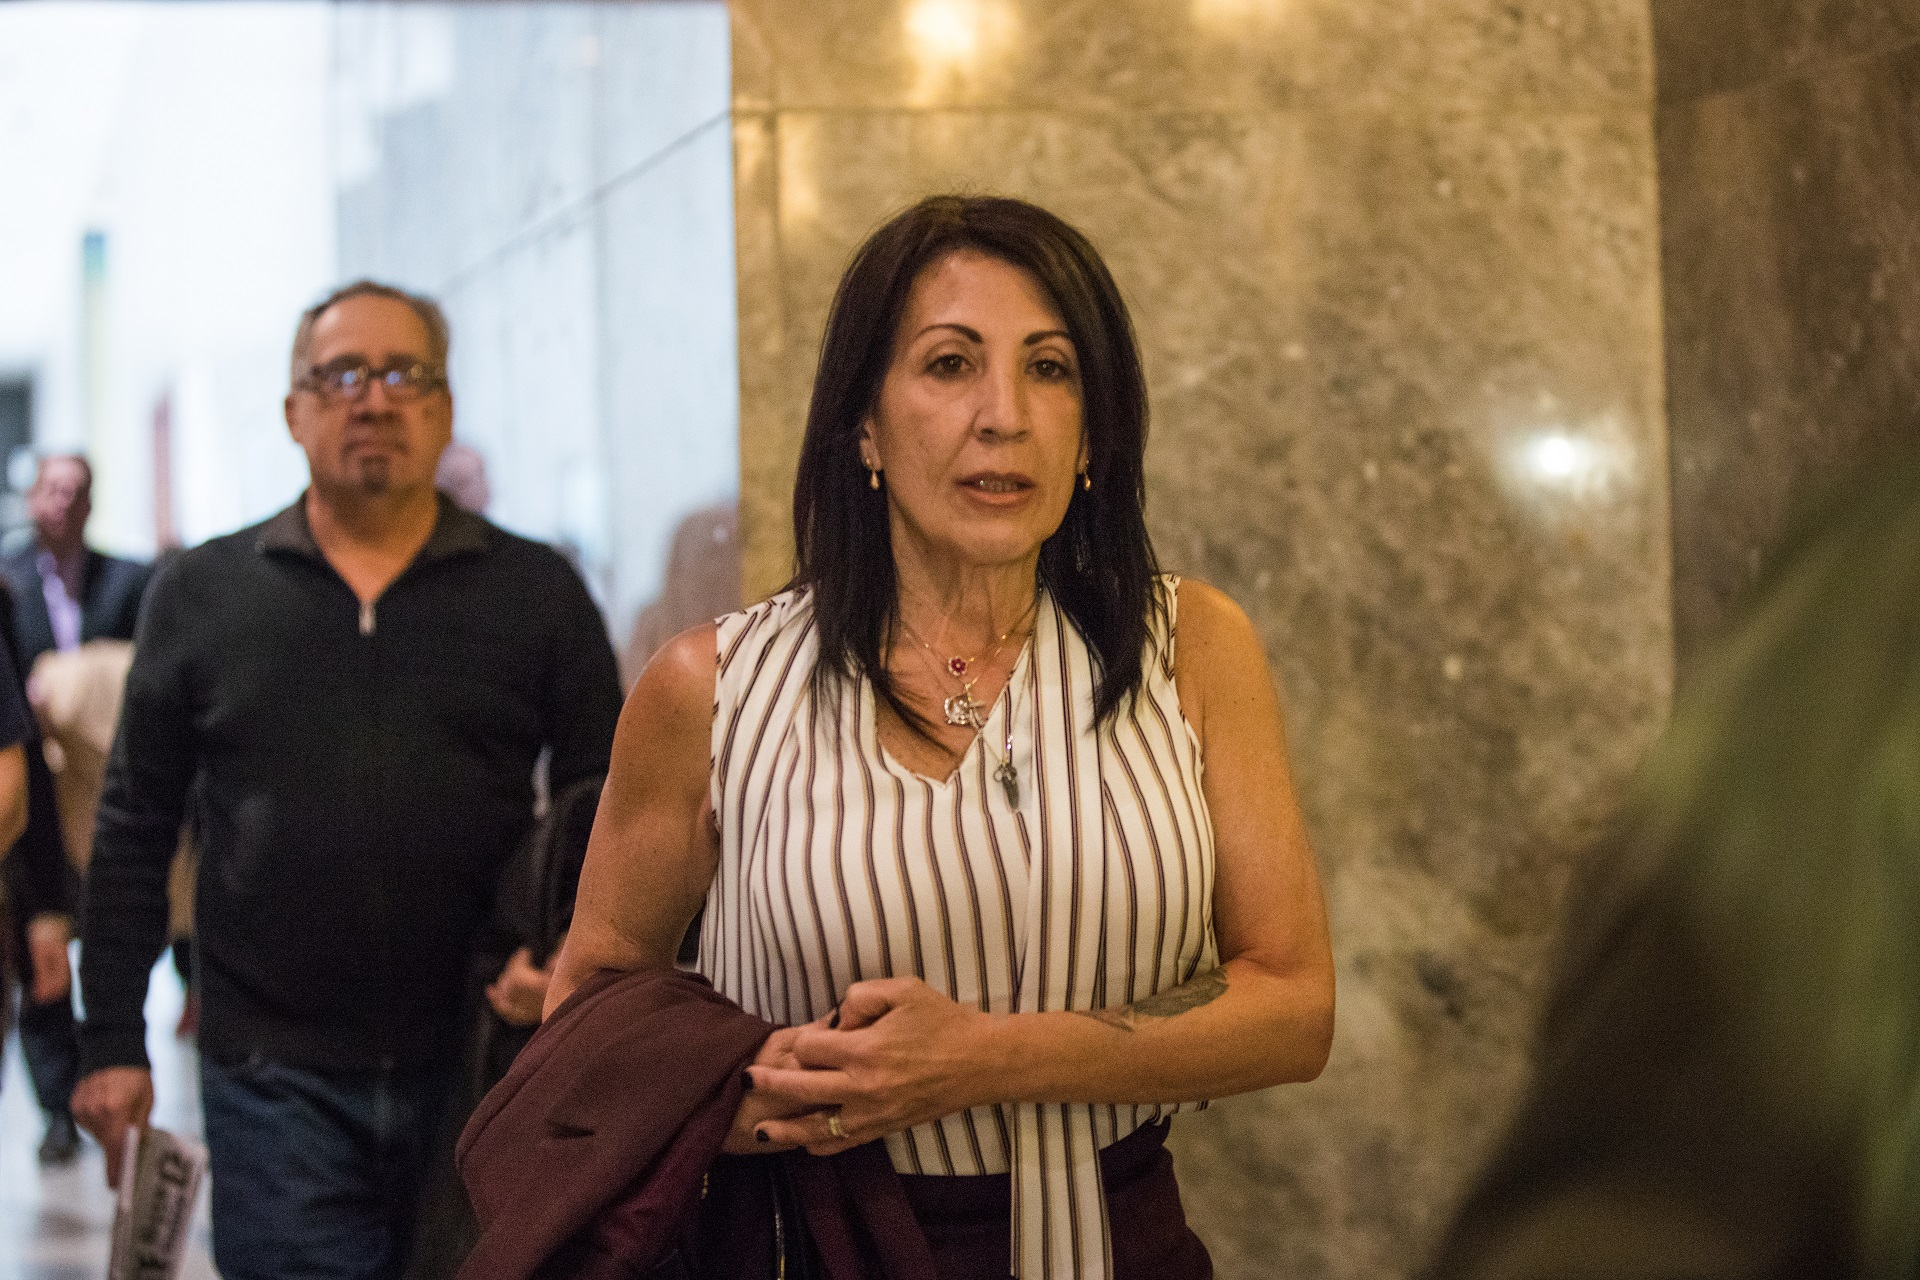 Karina Vetrano's mother Cathie Vetrano testified for the first time at the retrial of Chanel Lewis, the man accused of killing Karina. She did not testify during the first trial, which ended in a split jury in November.  Eagle  photo by Paul Frangipane